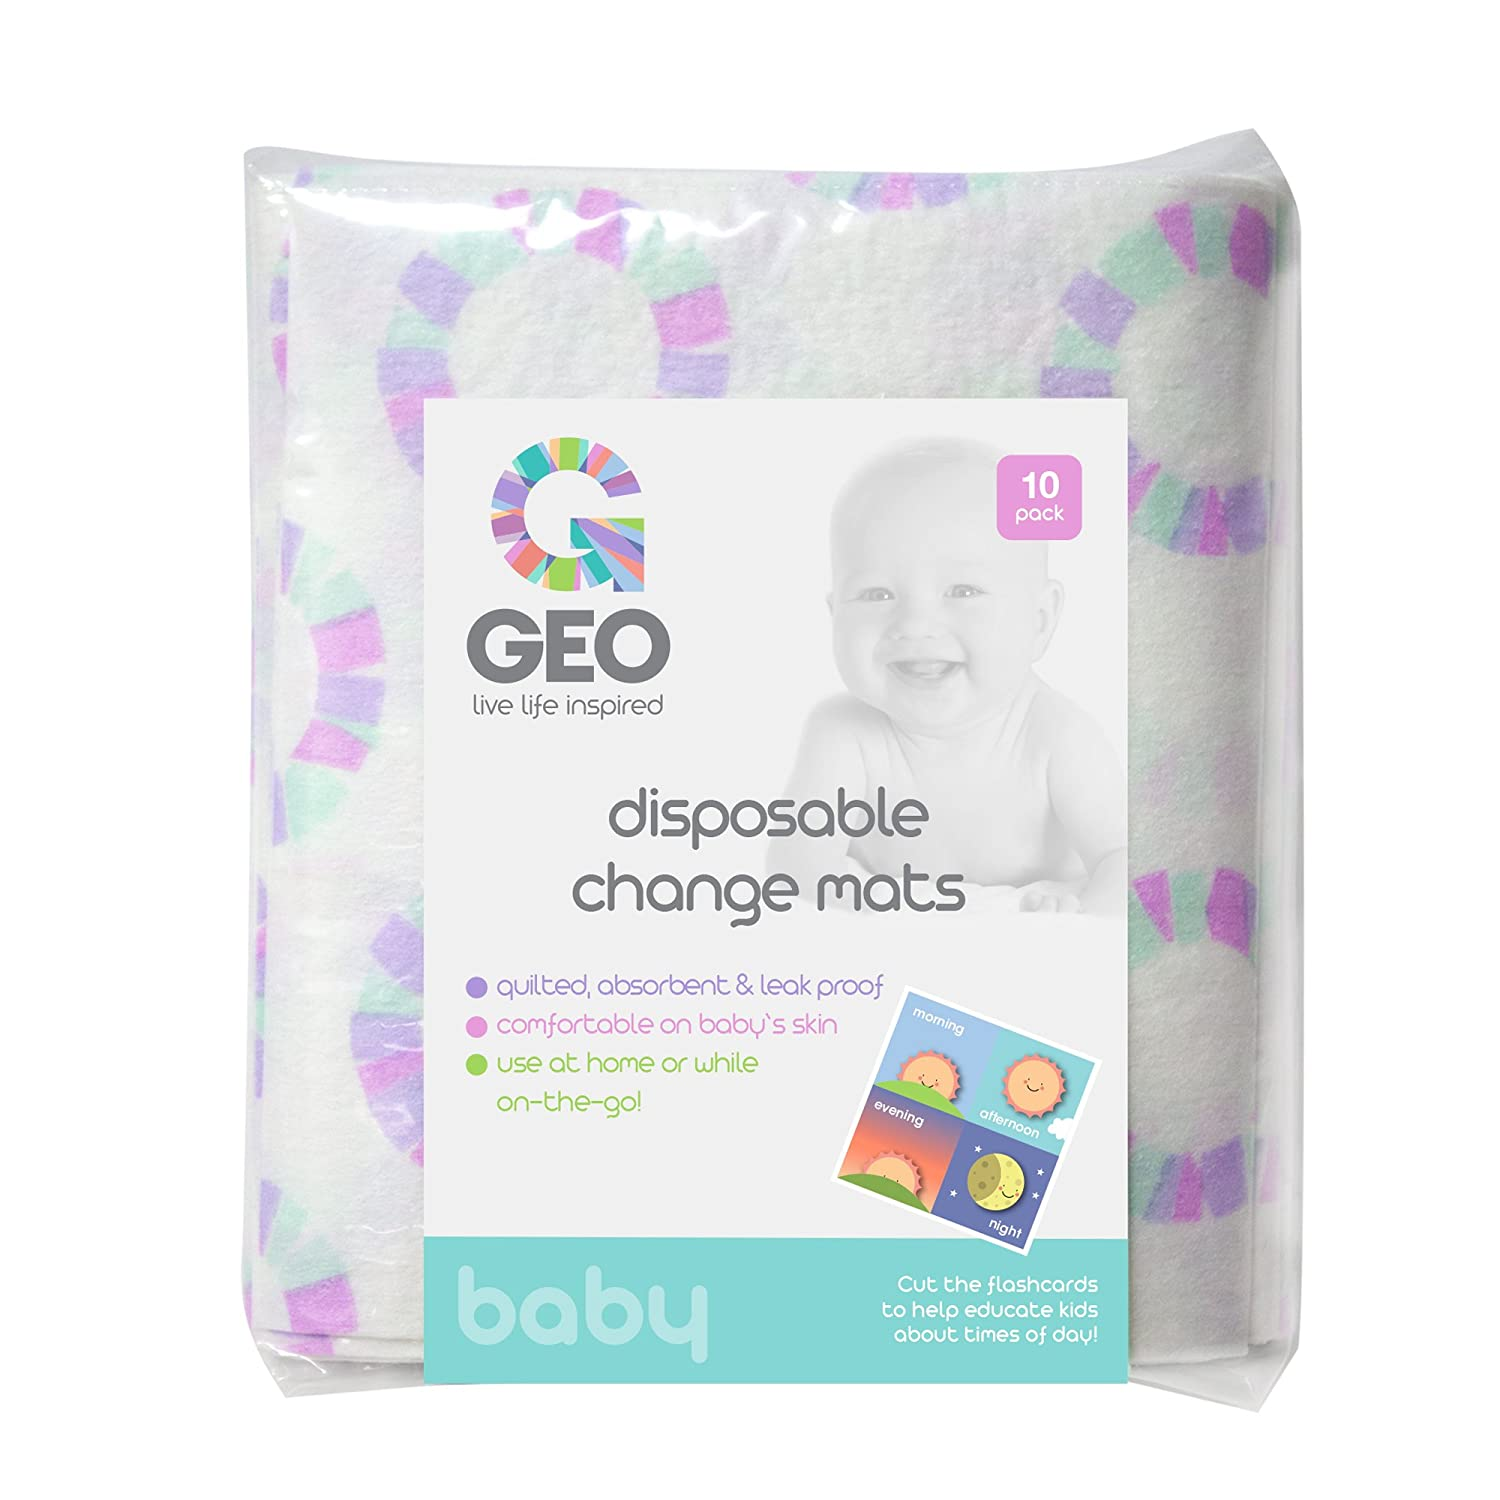 Disposable Baby Change Mats | Reusable | Quilted, Absorbent, Leak-Proof  Diaper Changing Pads | 23